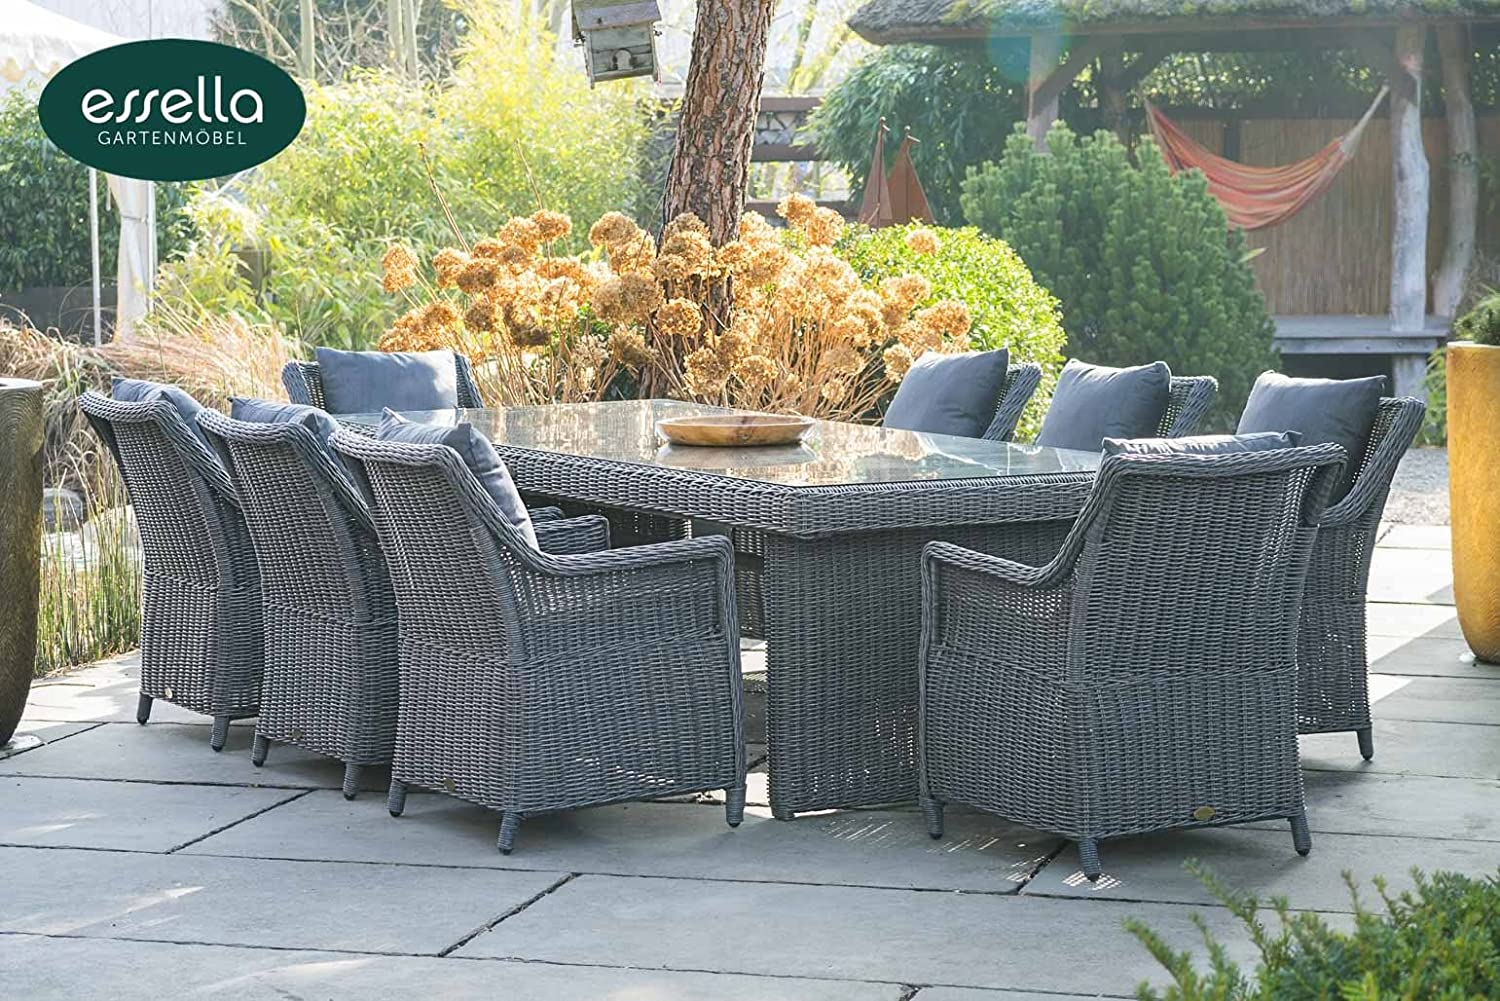 polyrattan sitzgruppe dubai 8 personen rundgeflecht grau meliert gartenm bel. Black Bedroom Furniture Sets. Home Design Ideas